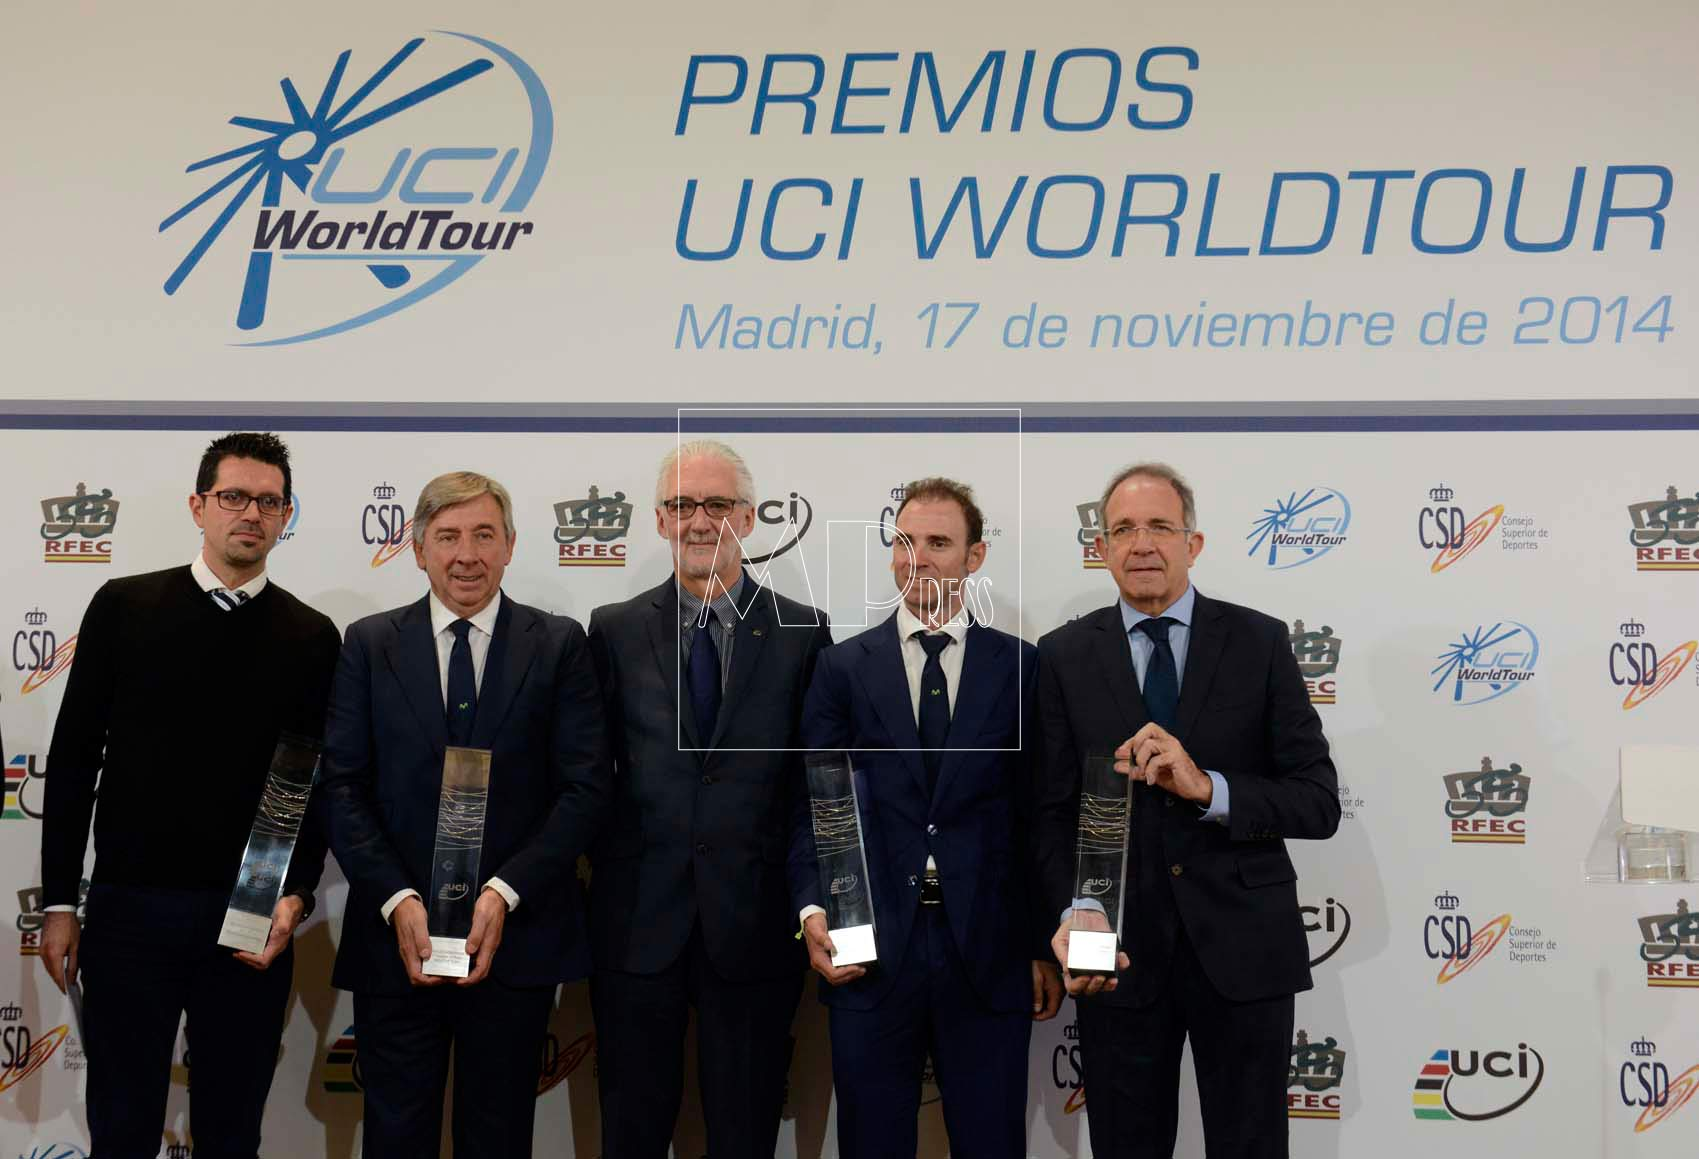 premios del UCI World Tour en Madrid